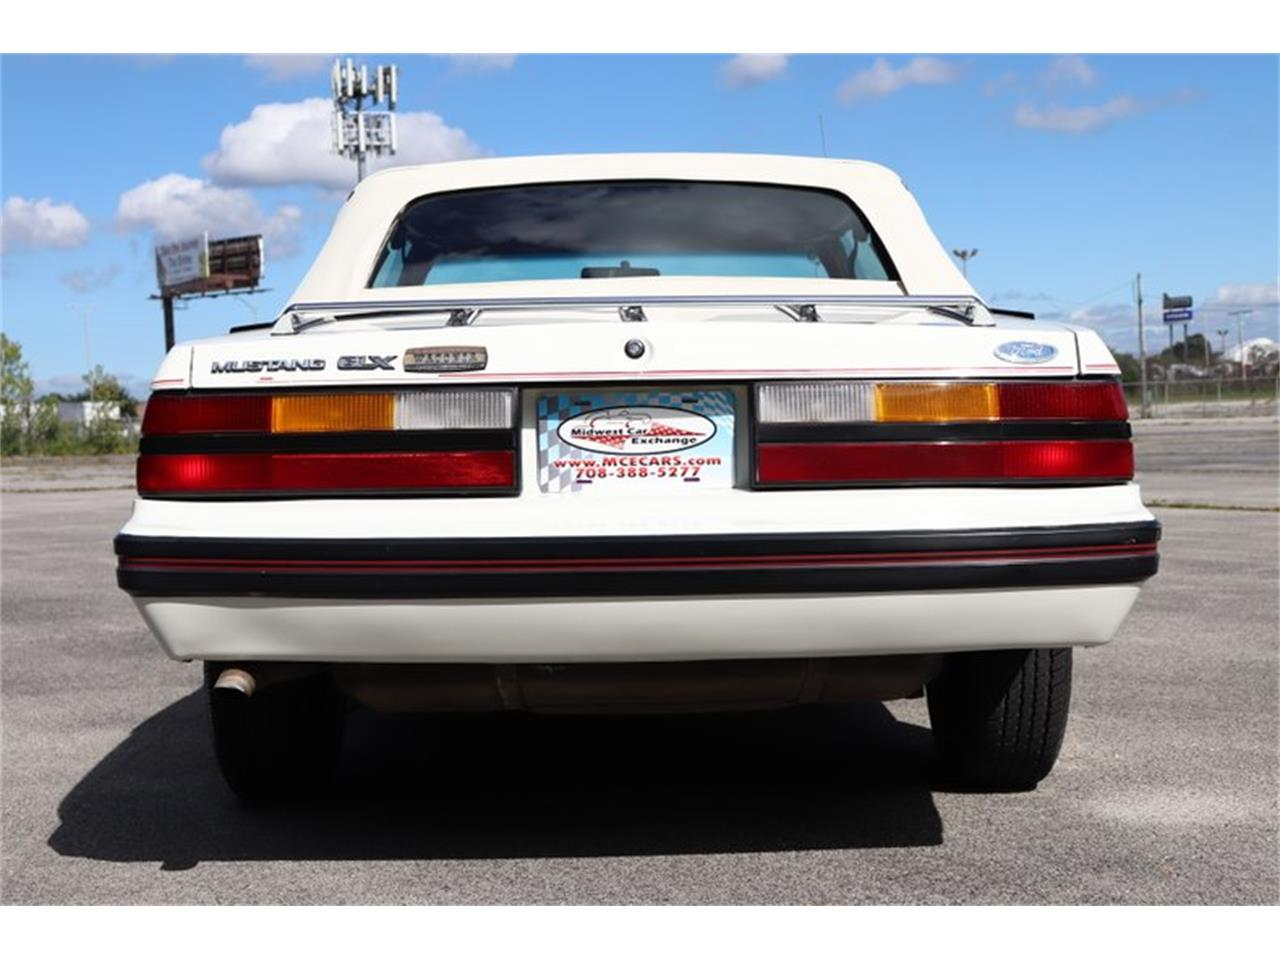 Large Picture of 1983 Ford Mustang located in Illinois - $7,900.00 - OHLI